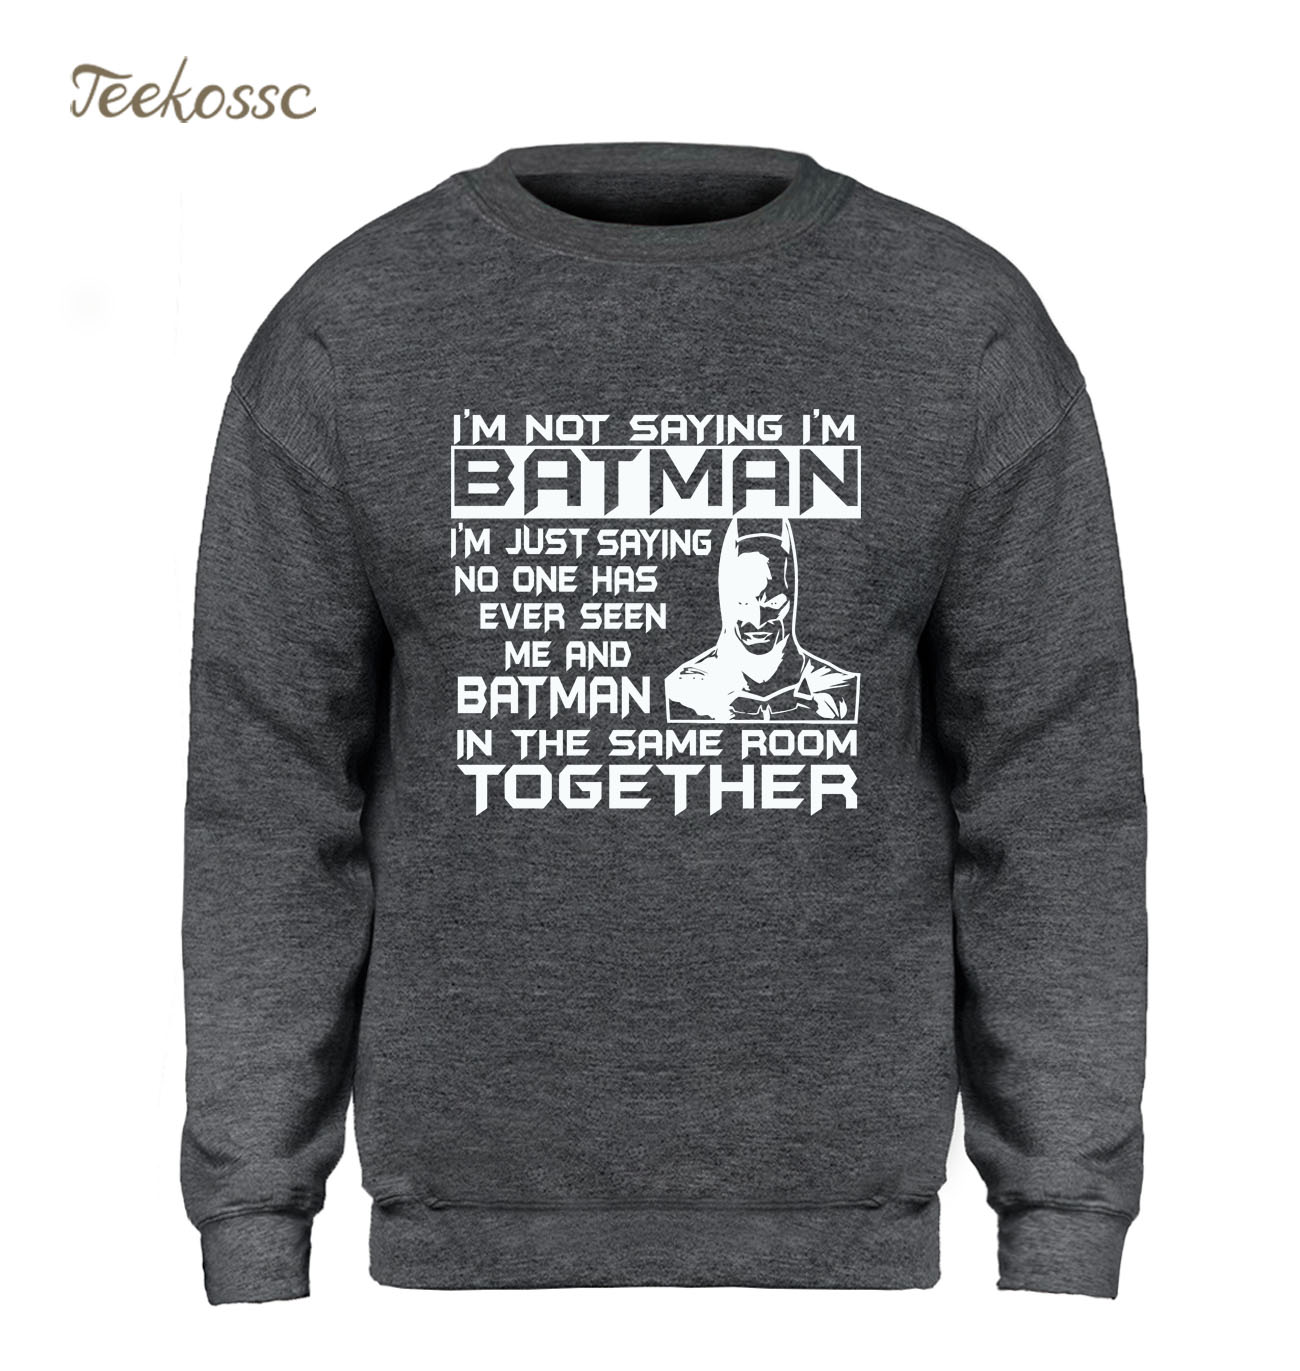 I'M a Batman Hoodie Men Super Hero Sweatshirt Funny Sweatshirts New Brand Winter Autumn Fleece Warm Slim Fit Grey Fitness Hoody